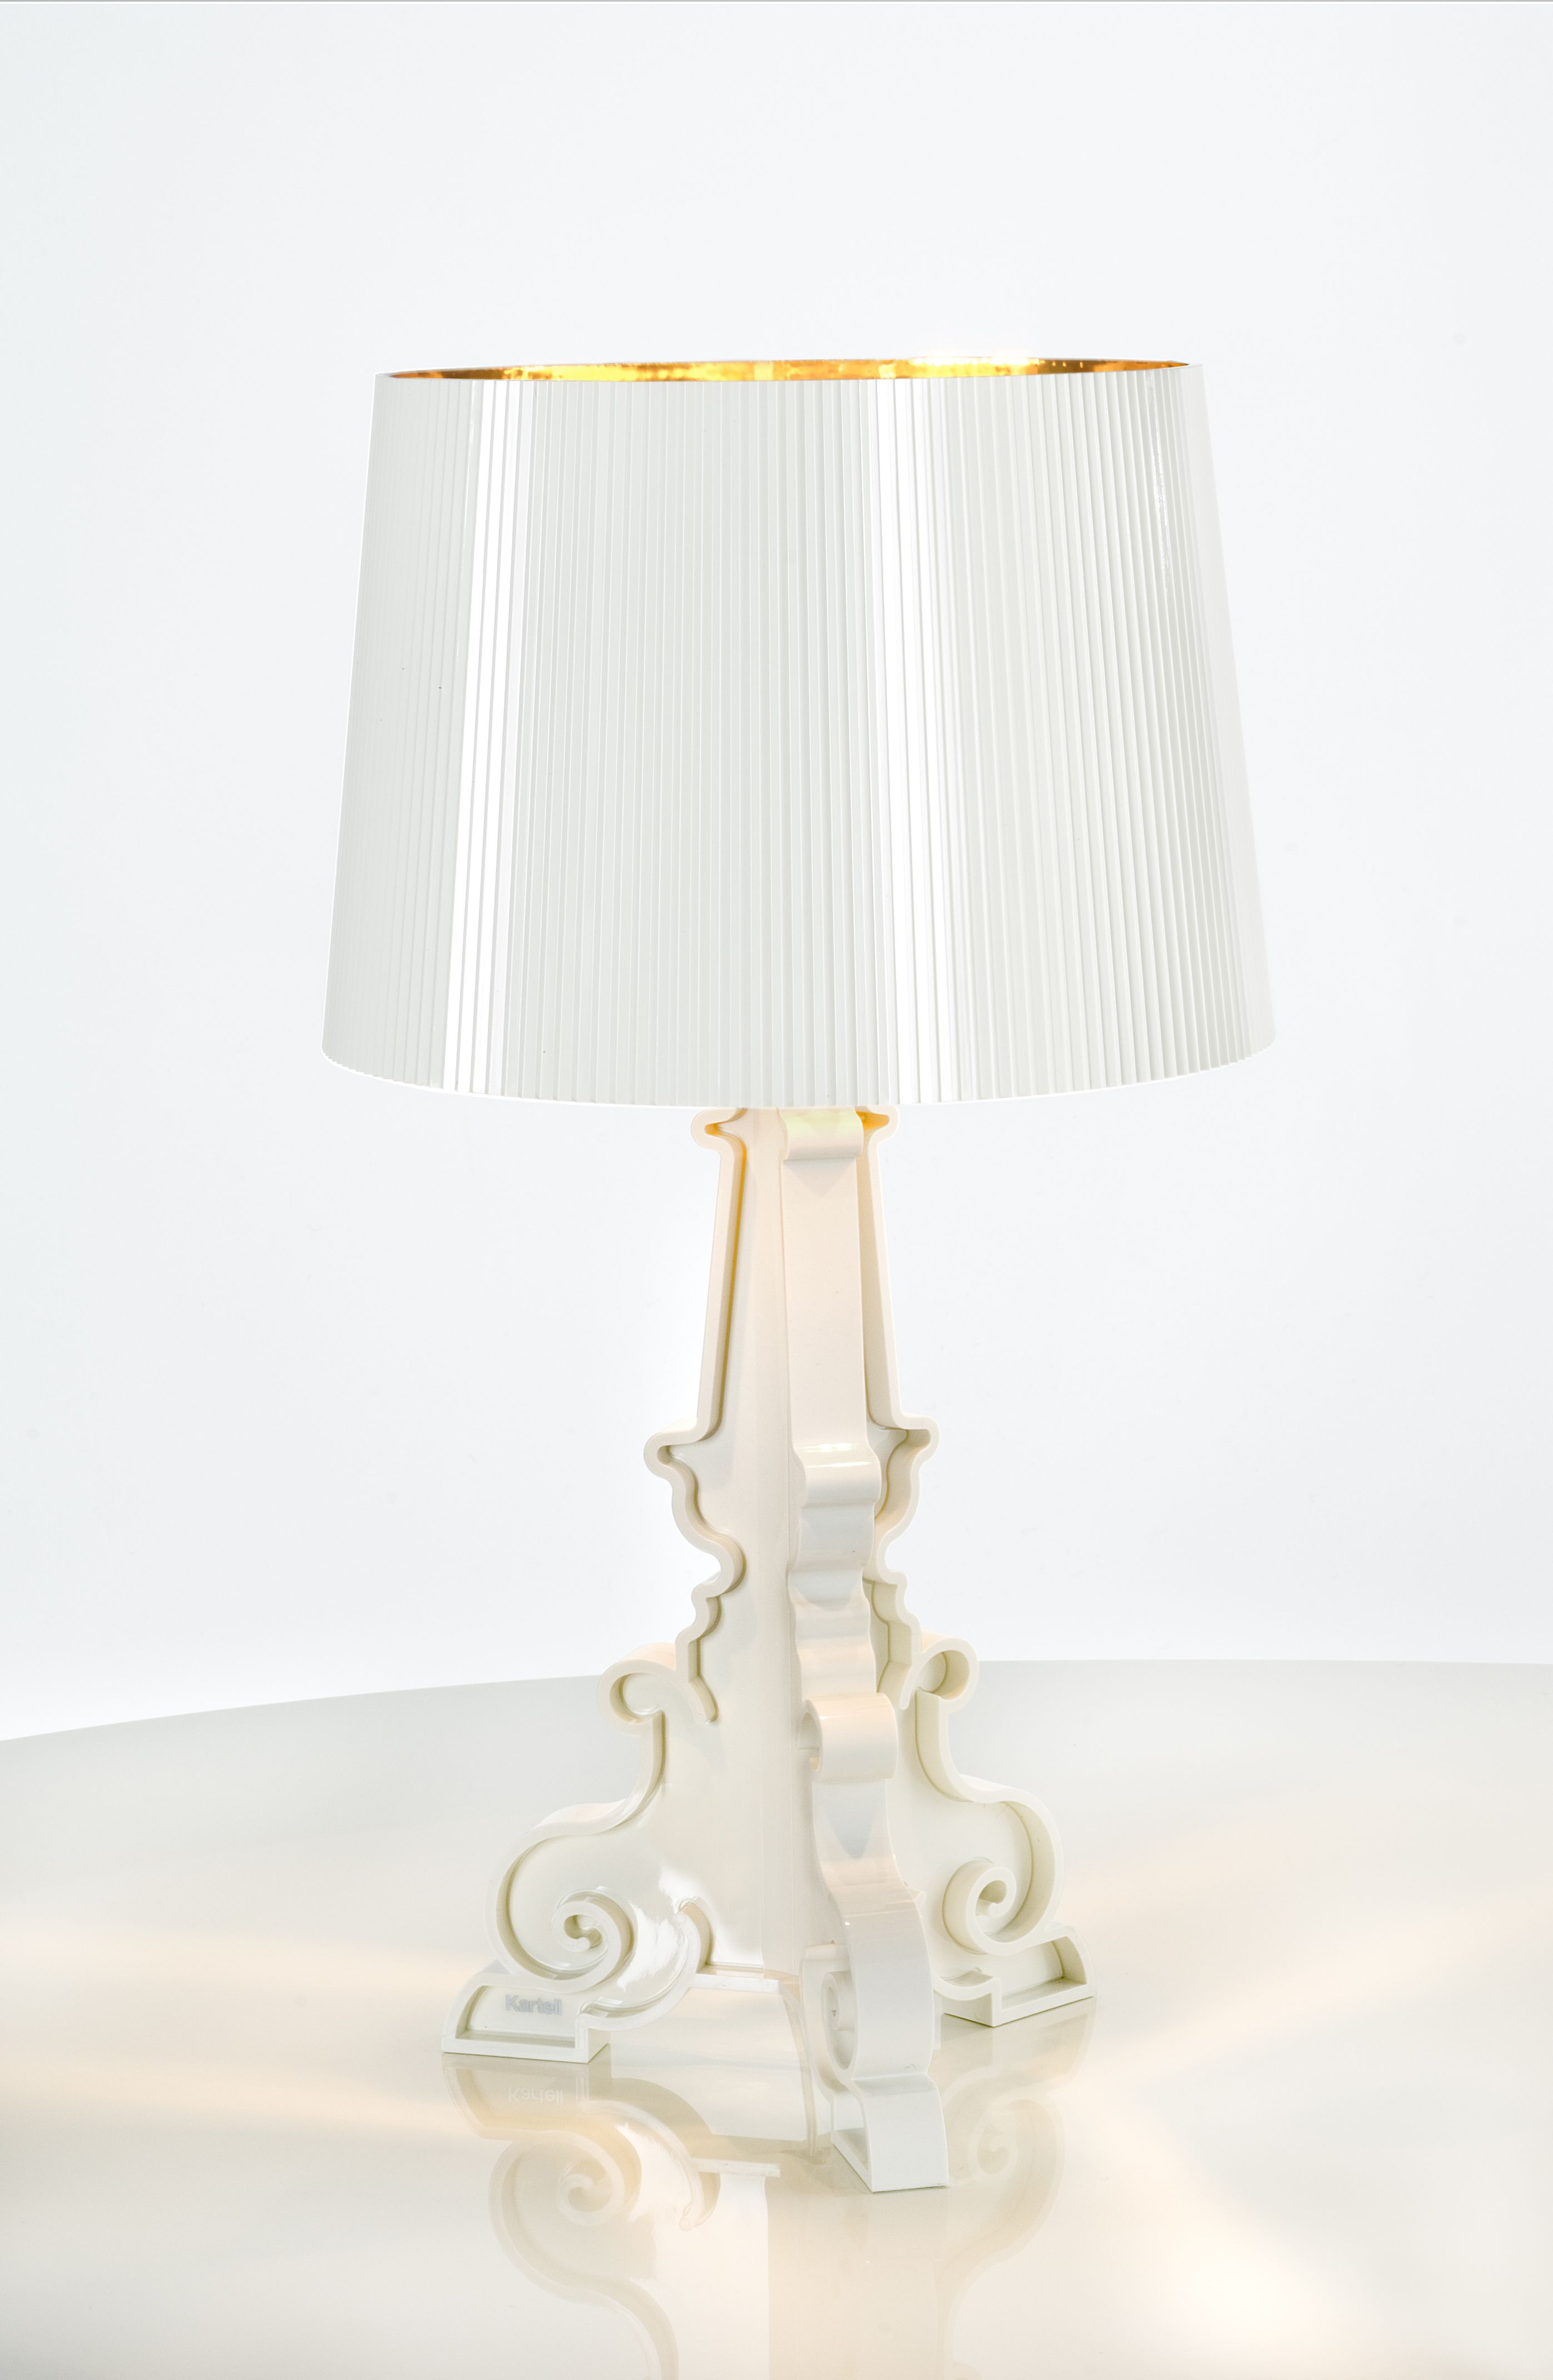 Bourgie by Kartell | Bourgie lamp, Bourgie, Kartell